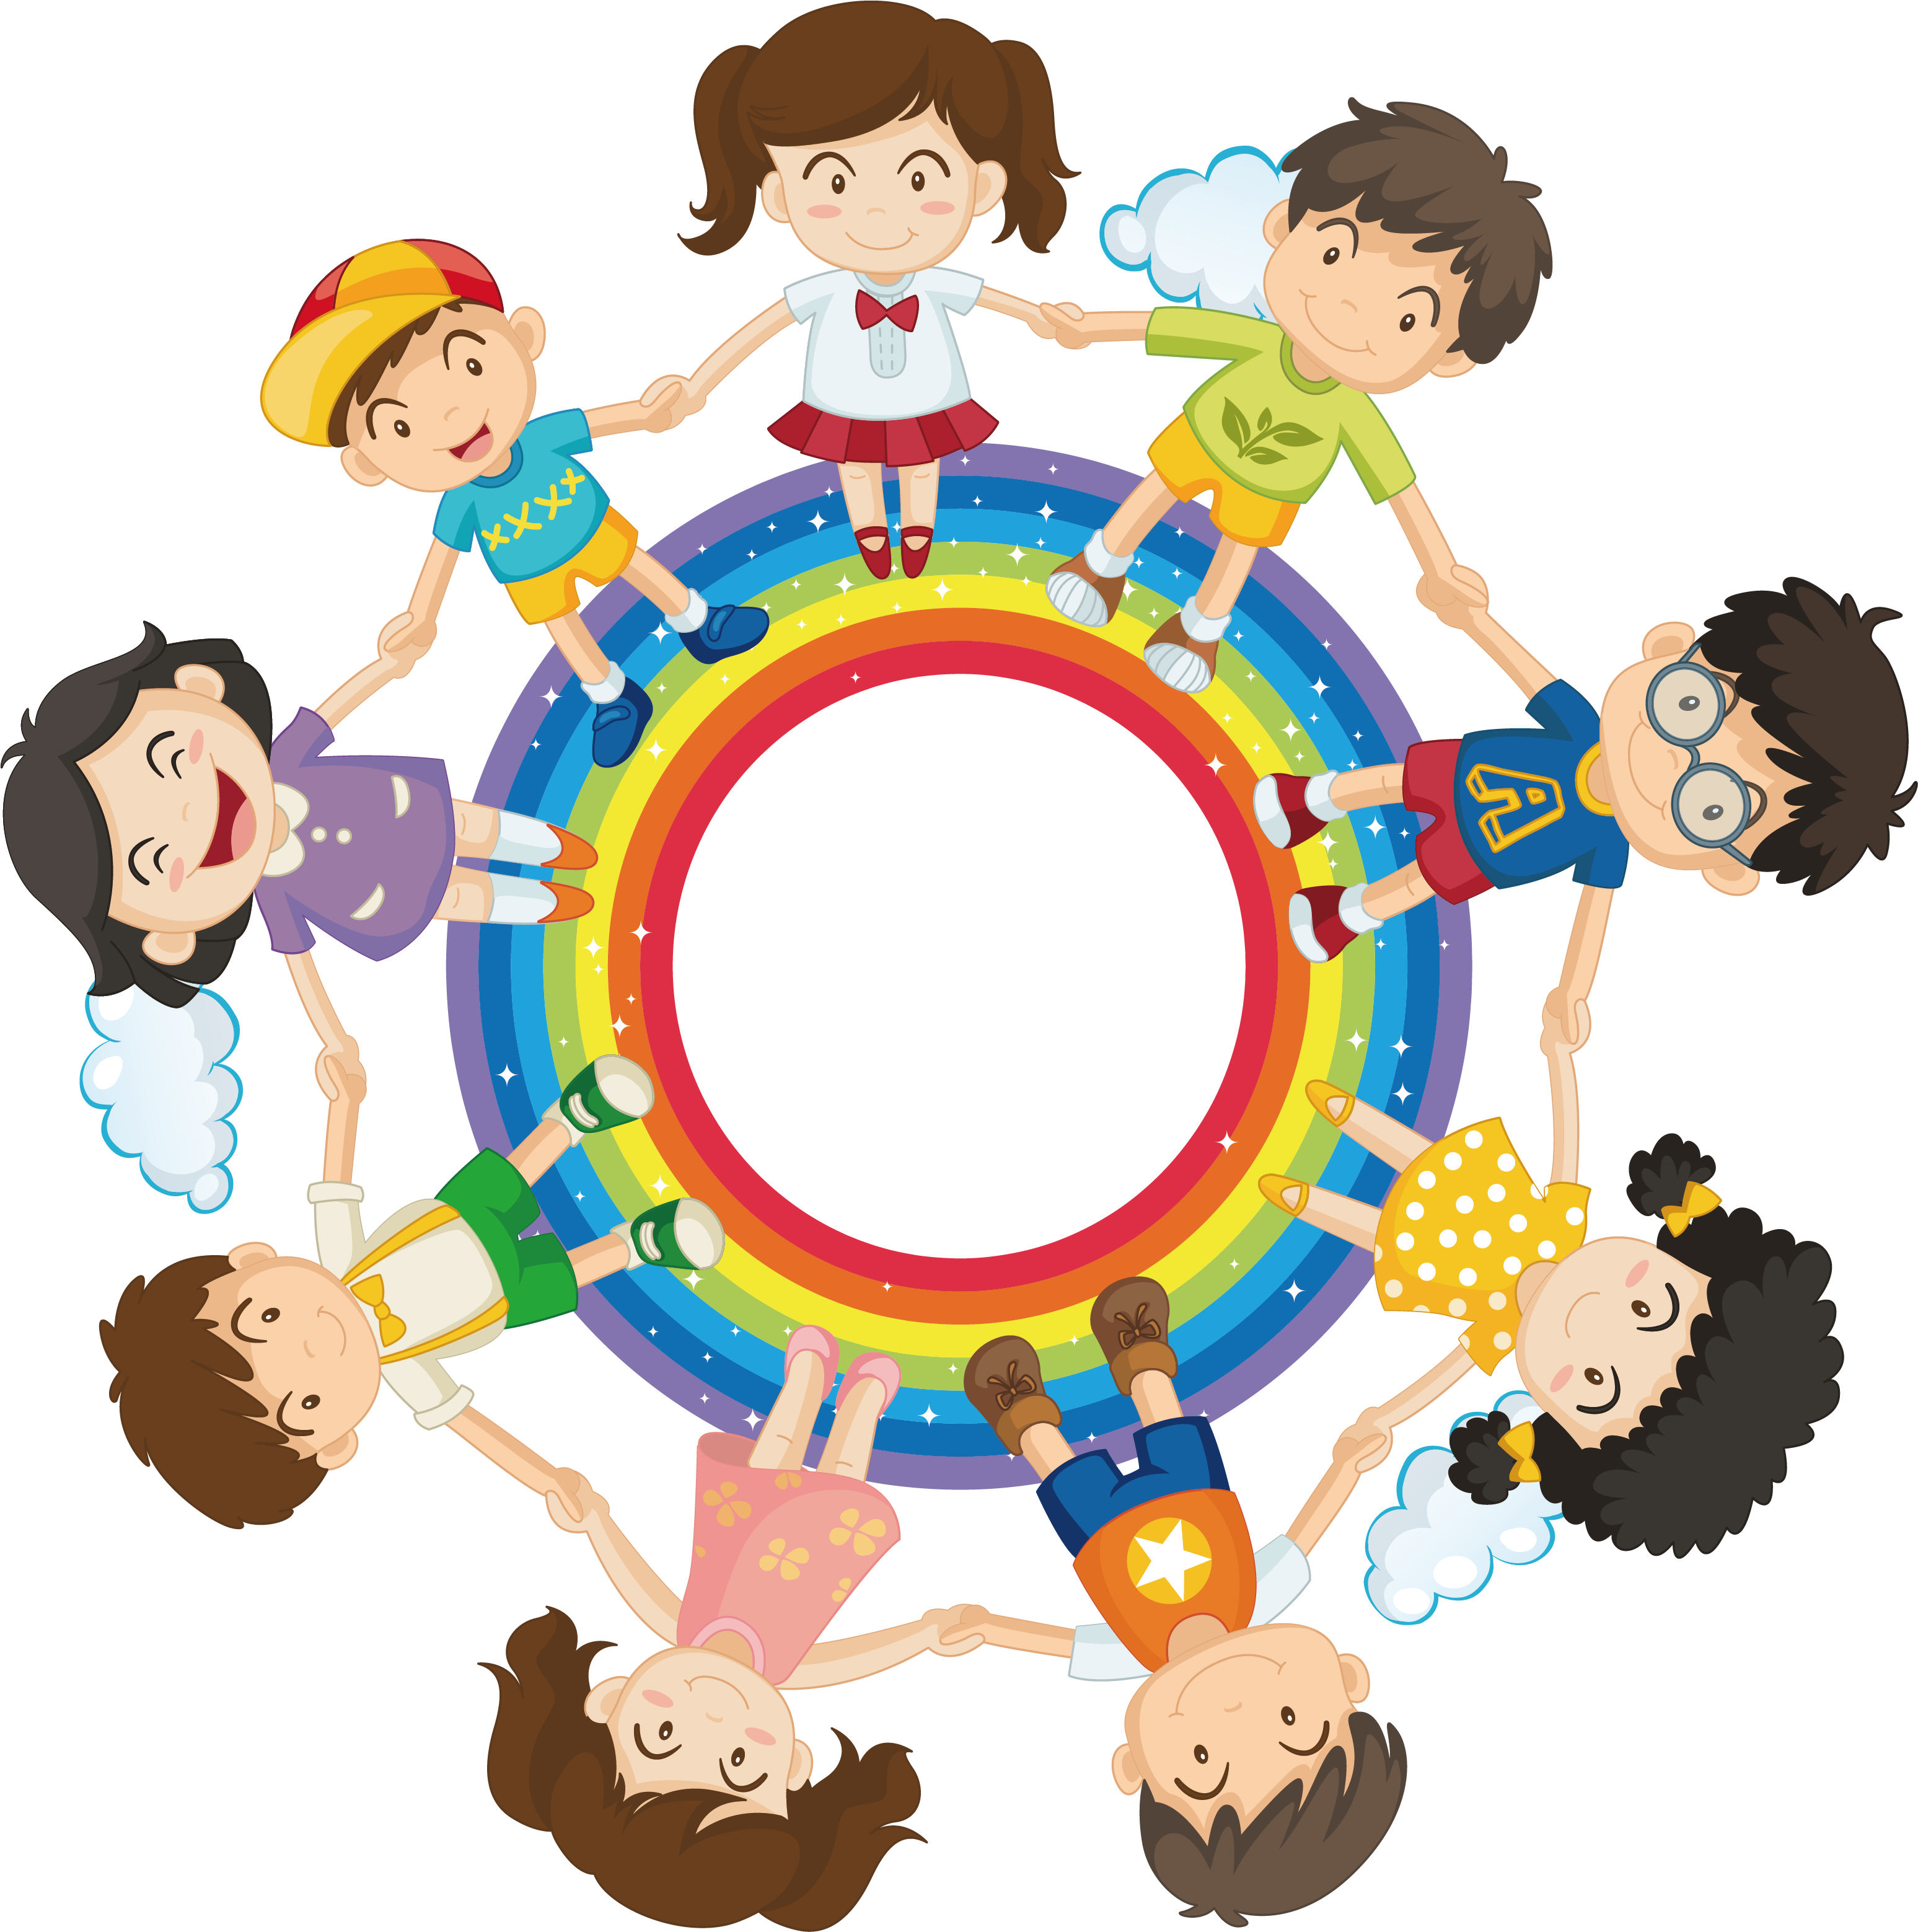 Hands holding football clipart banner transparent stock Royalty-free Child Clip art - Rainbow child with hand in hand 3095 ... banner transparent stock